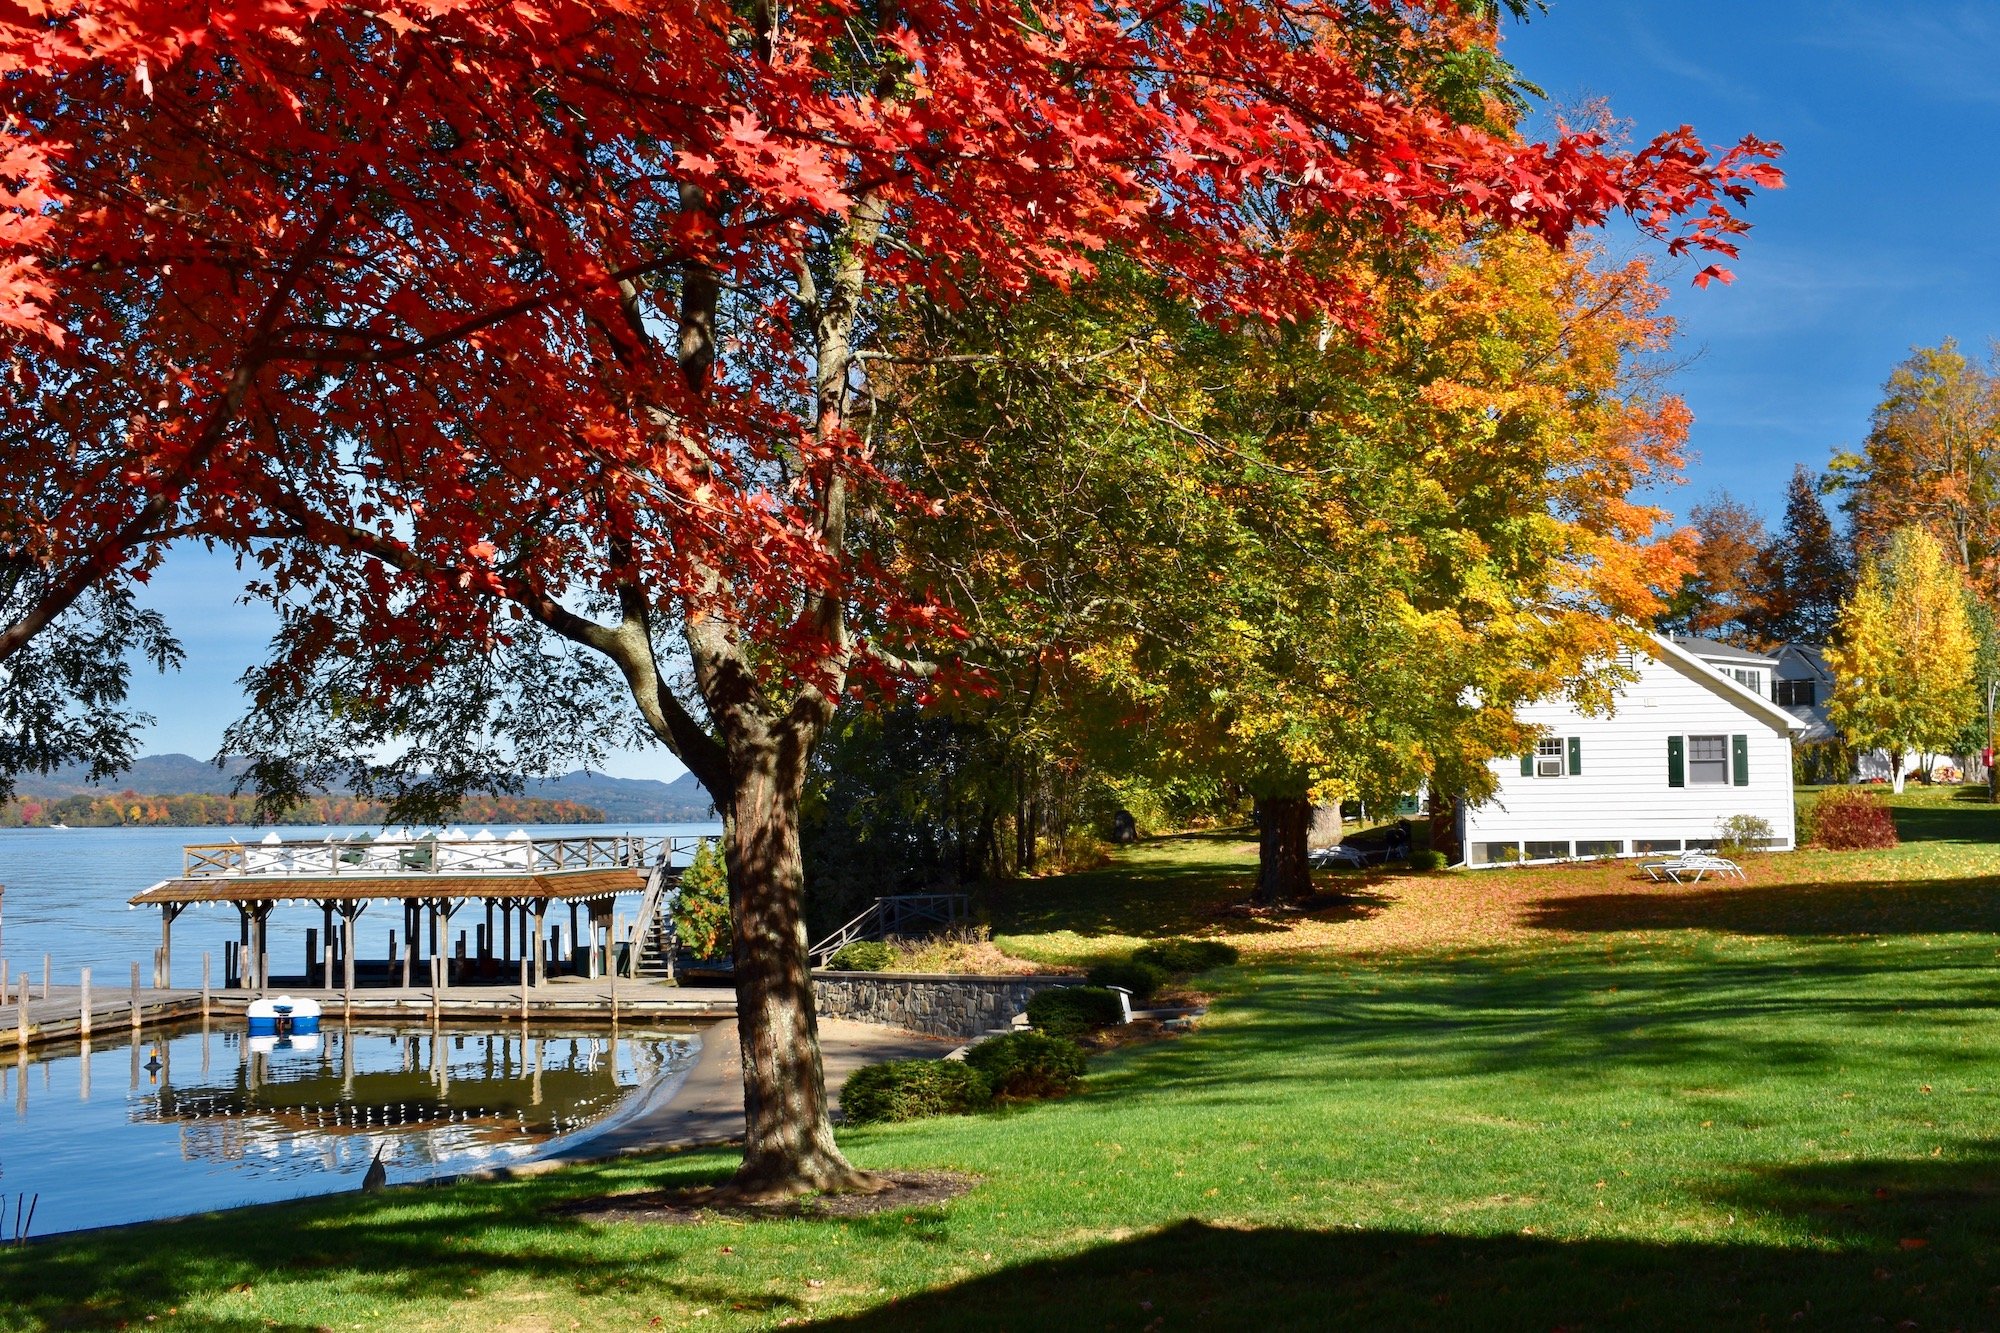 Lake George vacation cabin rental at Takundewide Cottages on Lake George Fall Foliage